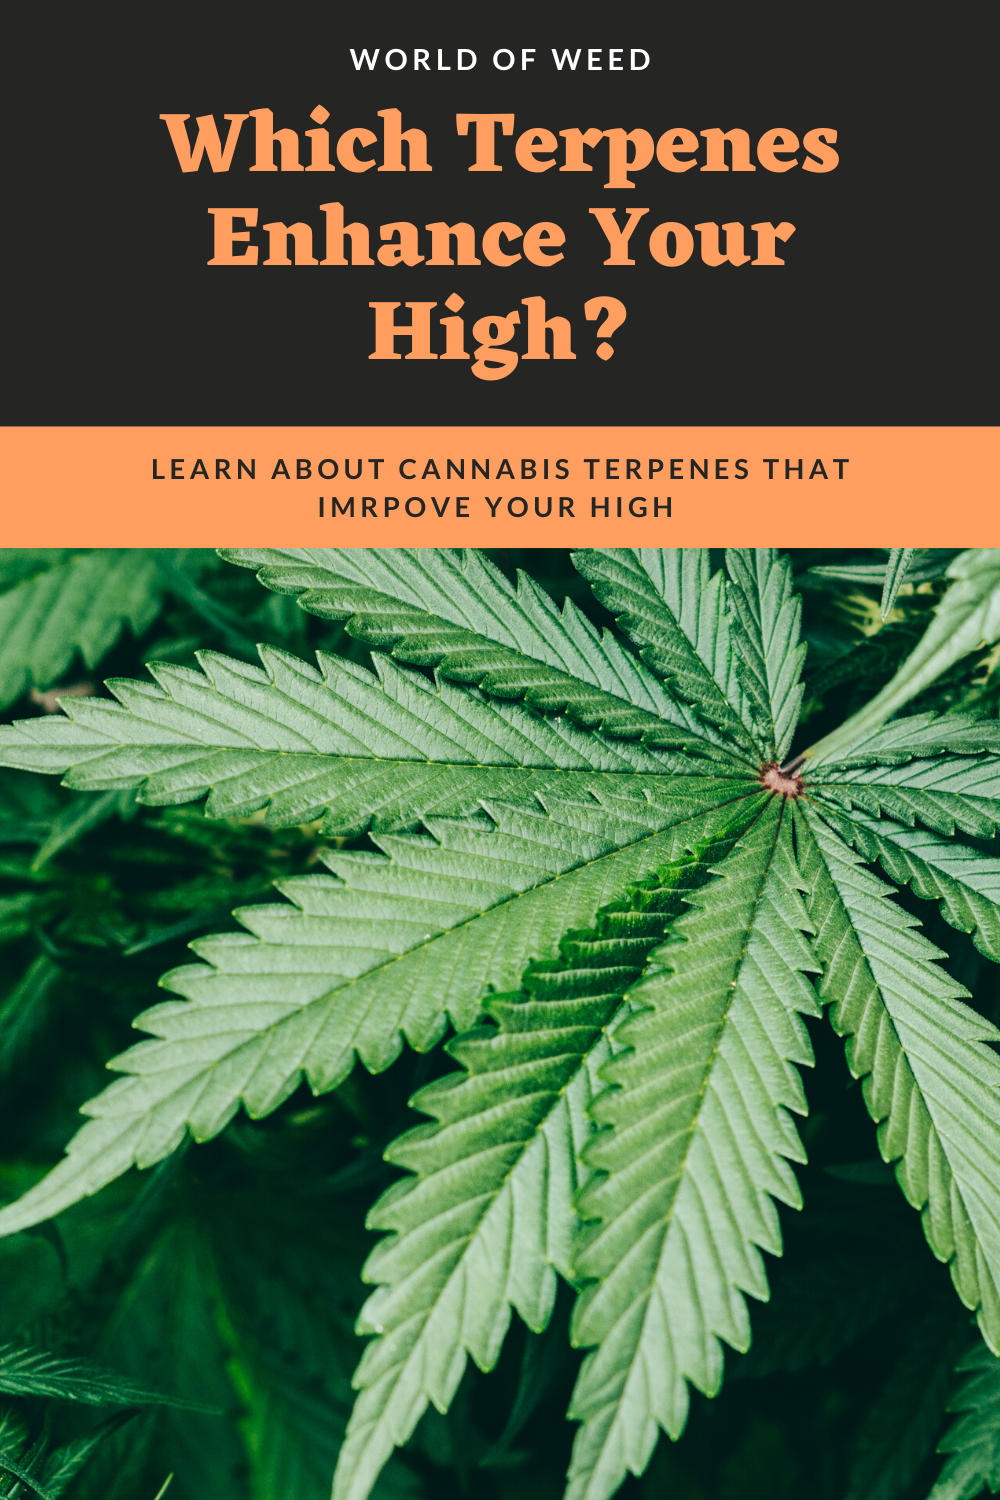 Which Terpenes Enhance Your High?